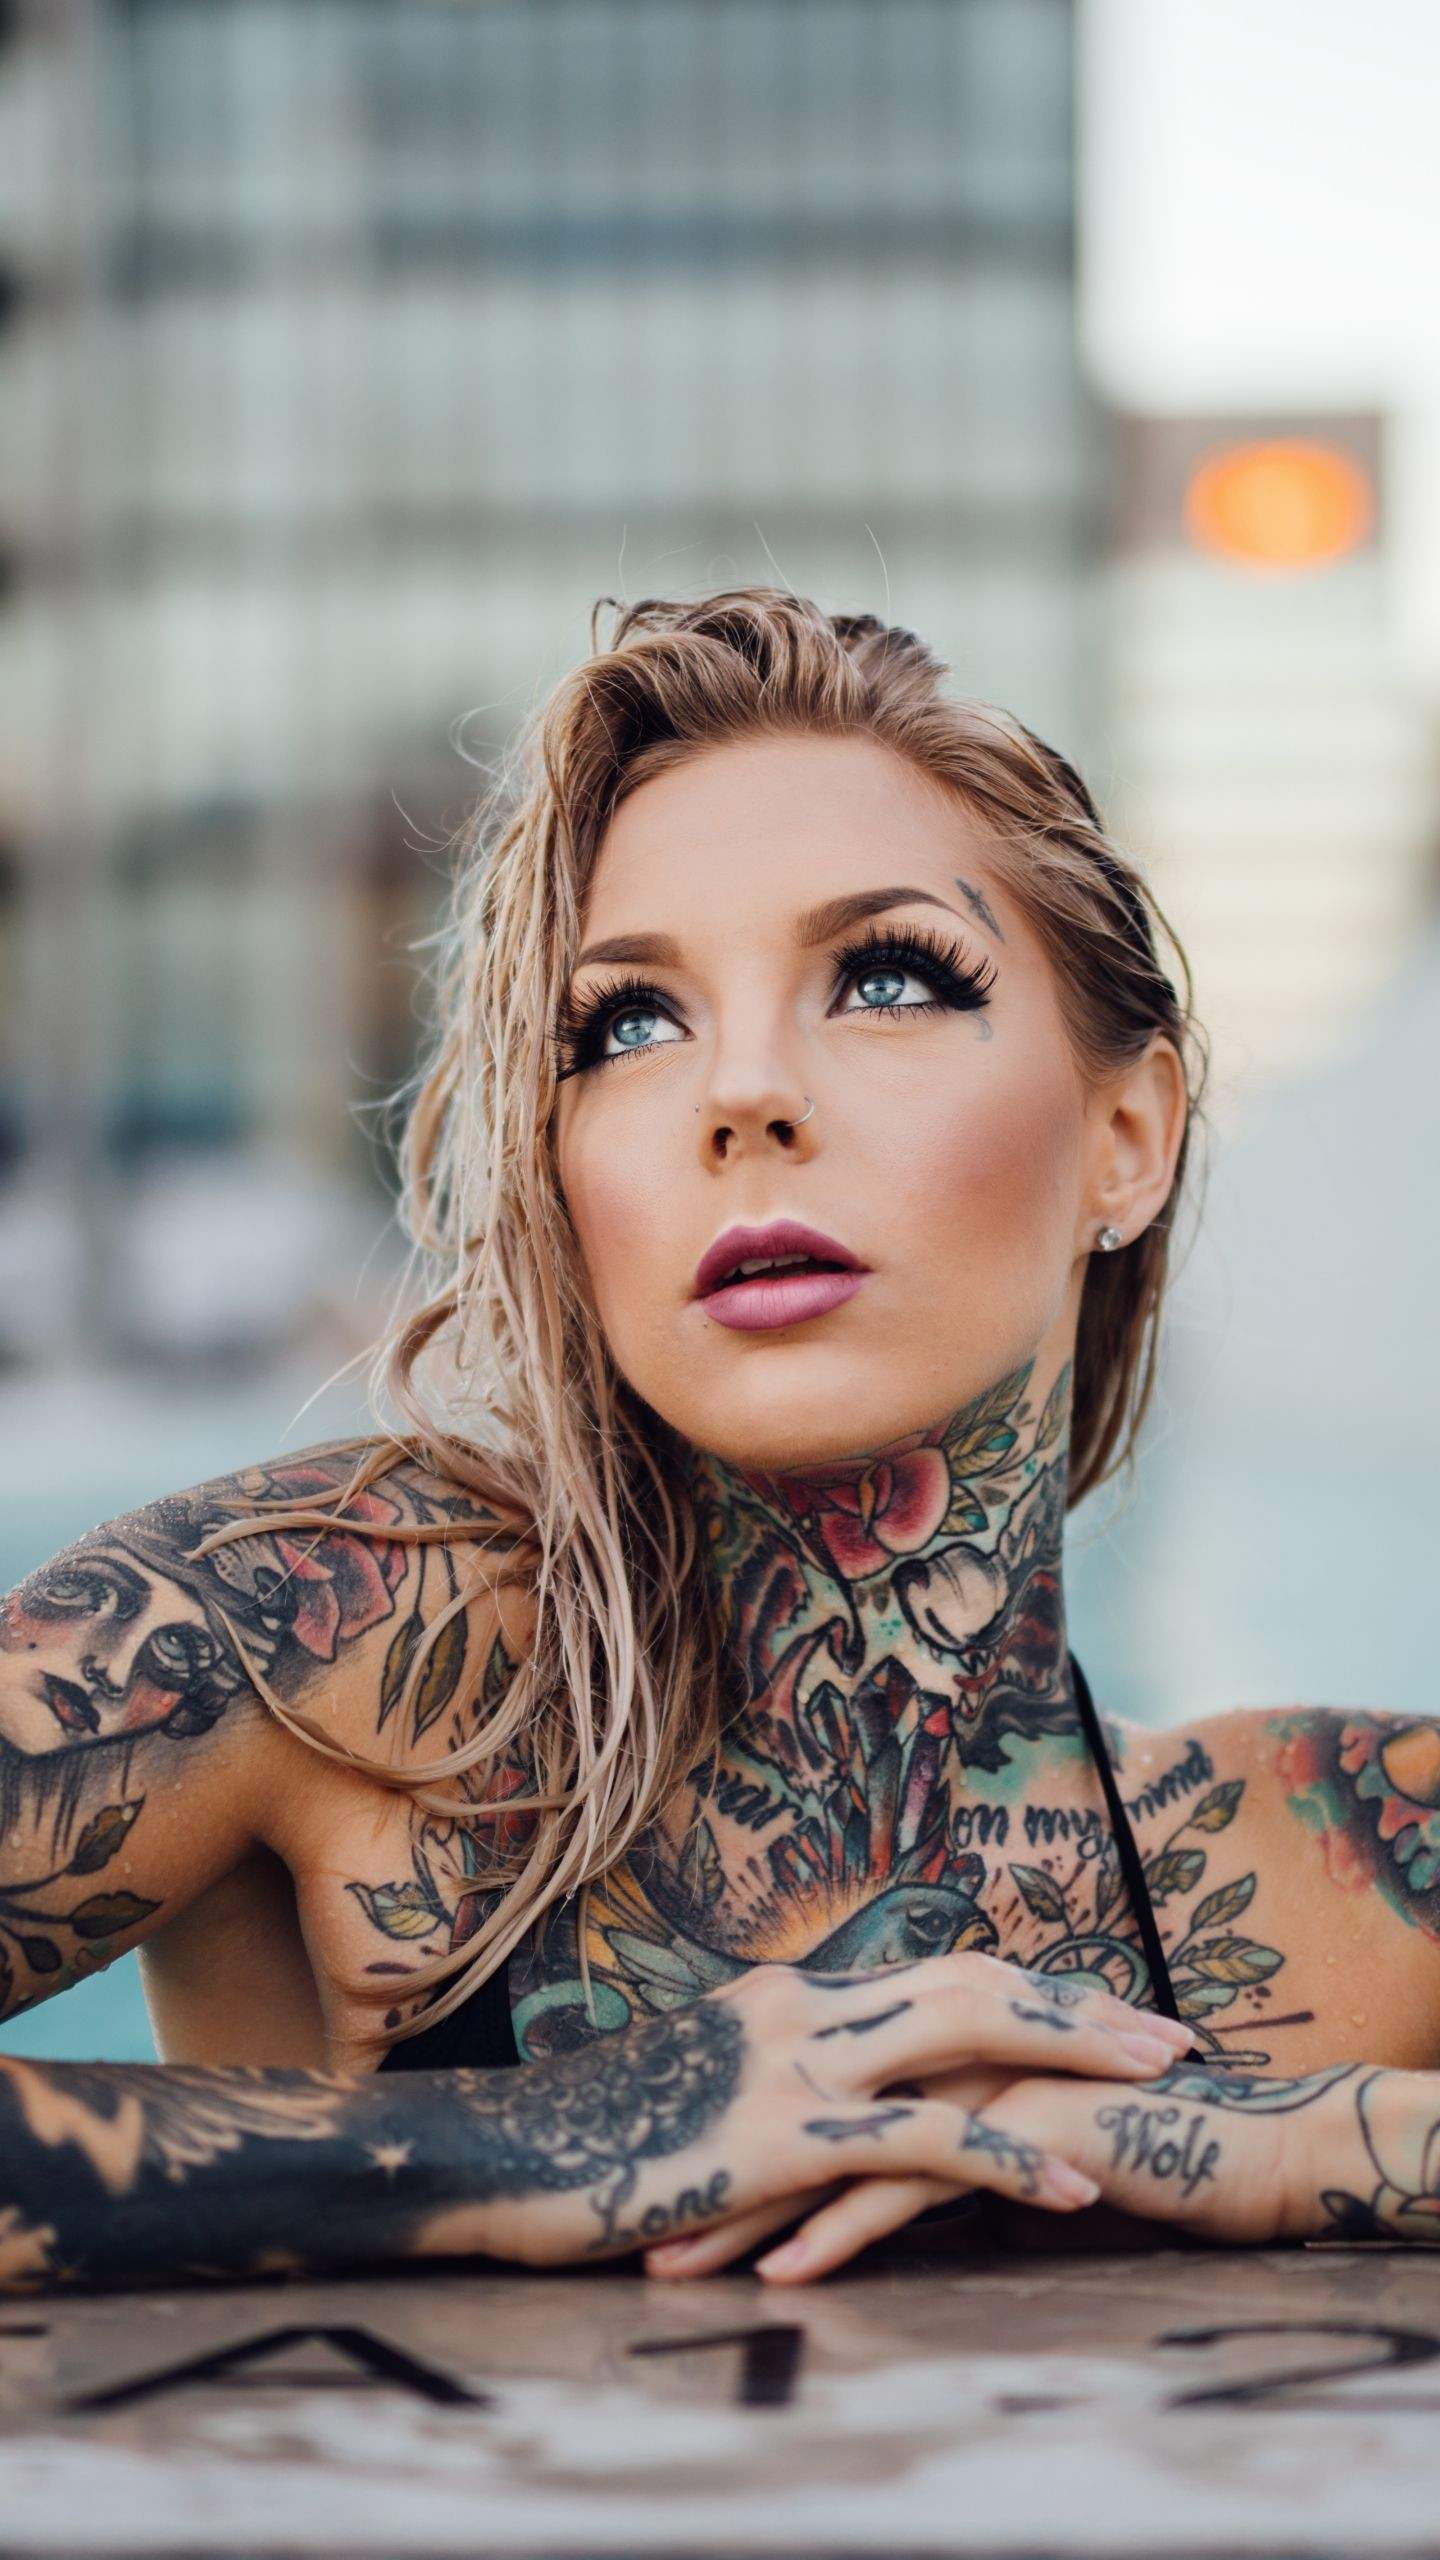 1440x2560 Supreme Iphone Wallpaper, Tattoo Girl Wallpaper, Wall Wallpaper, Tattoos  For Women, Girl